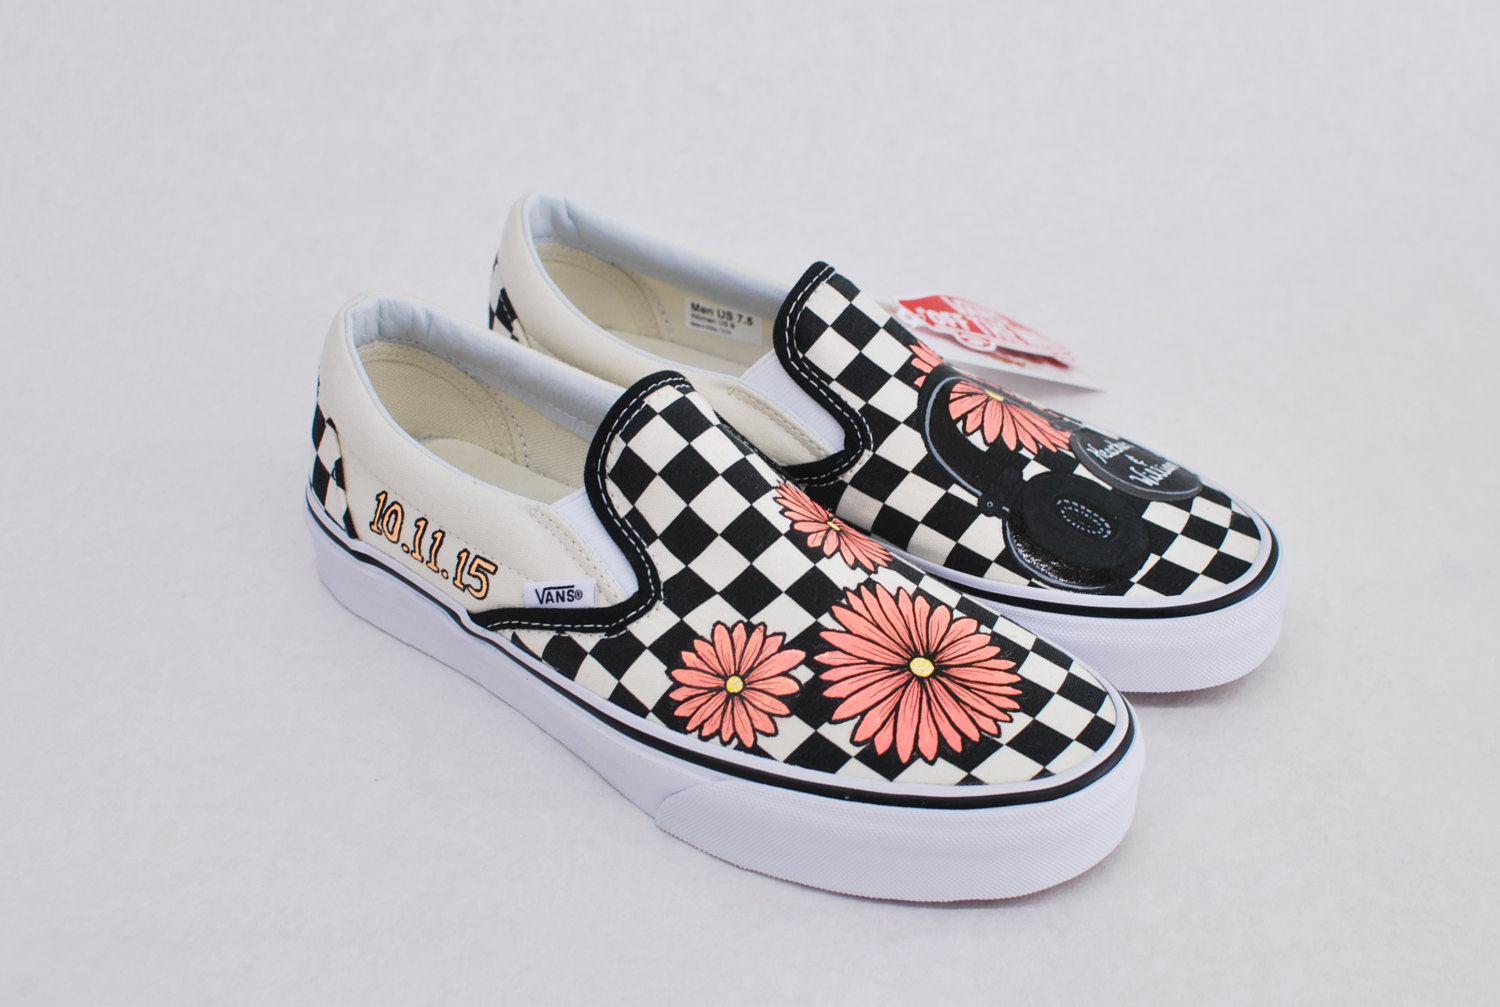 Drawn vans feather Painted Like Feature Custom ons